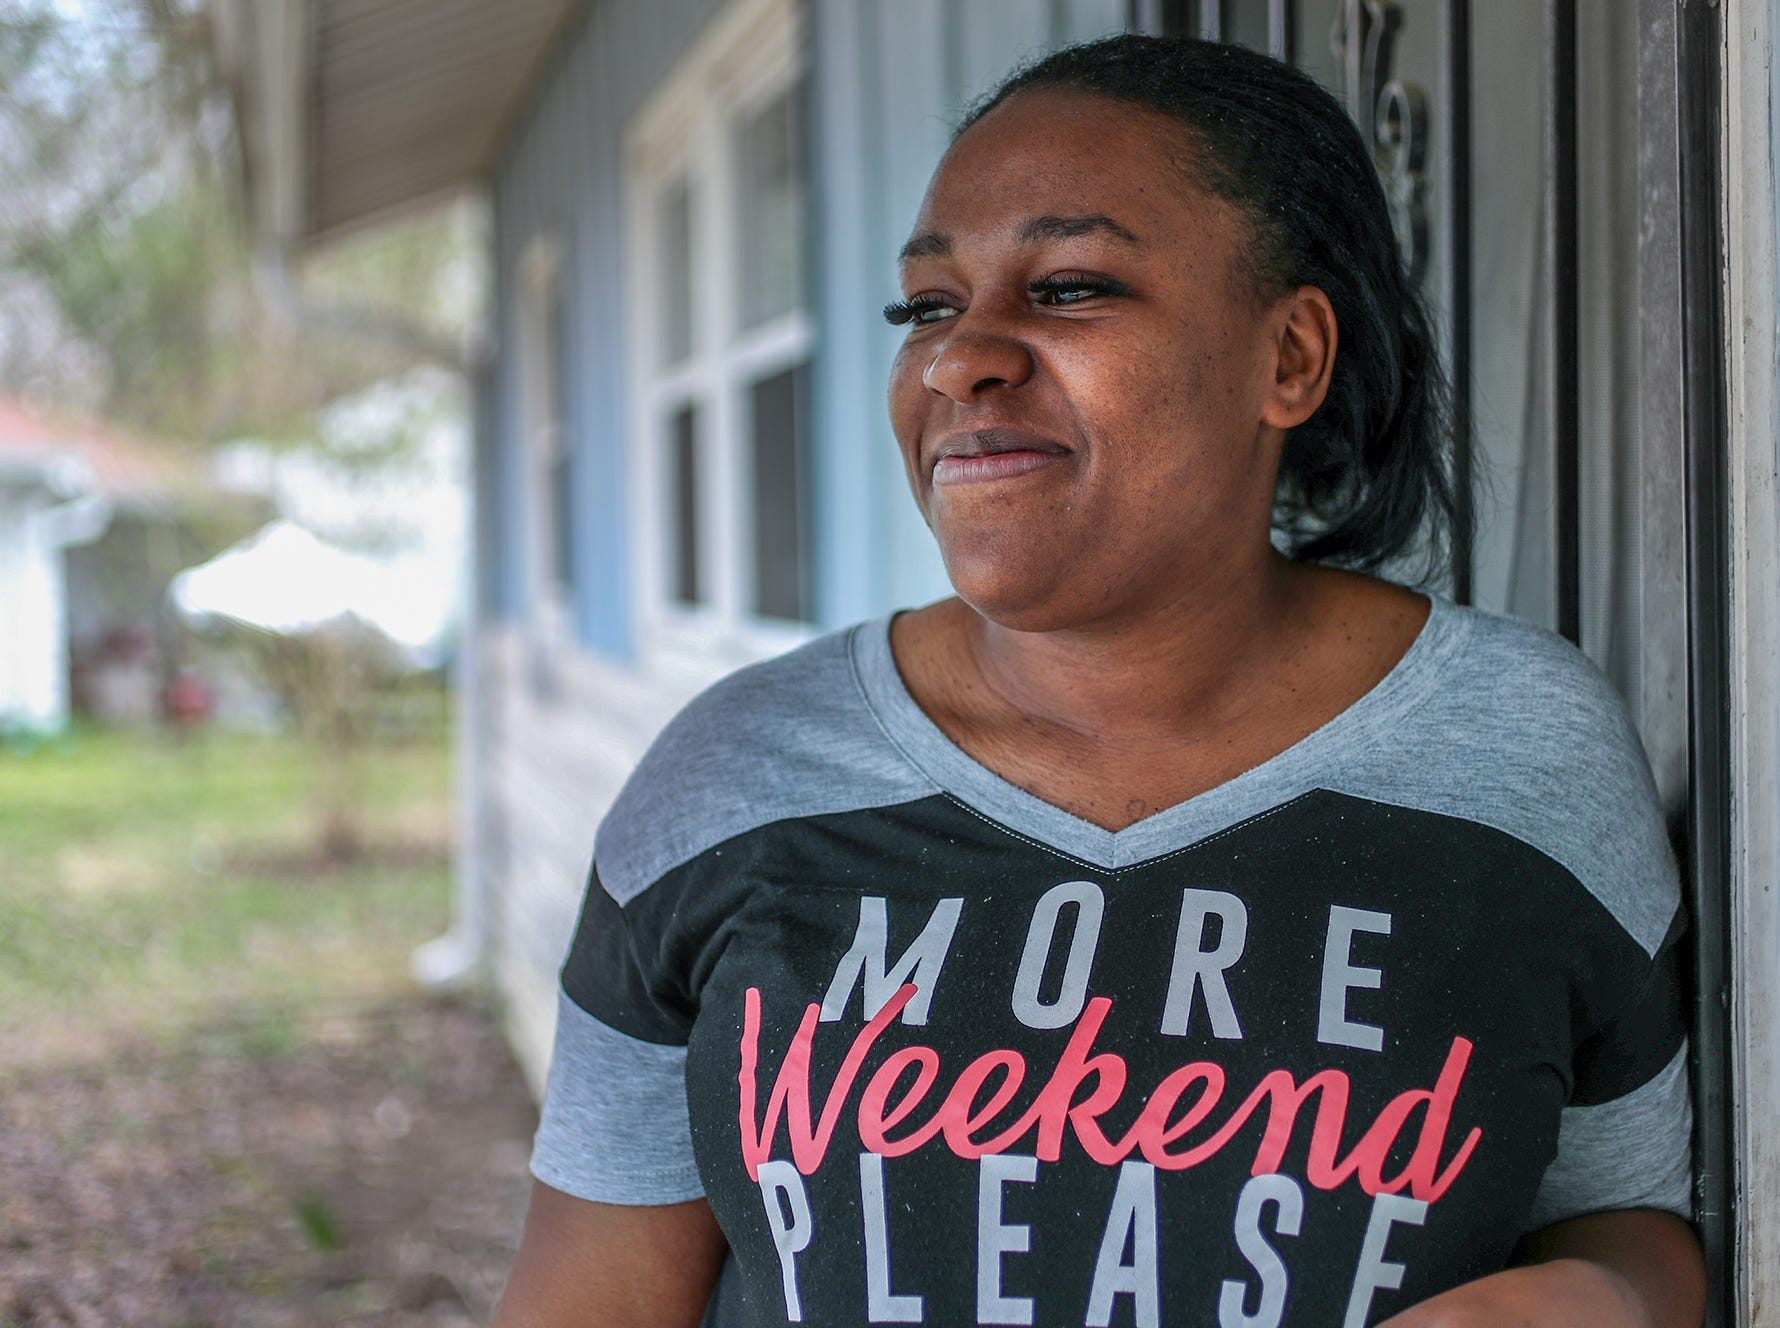 Latasha Sanders steps outside a family friend's home on Wednesday, April 10, 2019. Sanders and her family are residing at the Indianapolis residence until she can find permanent housing.